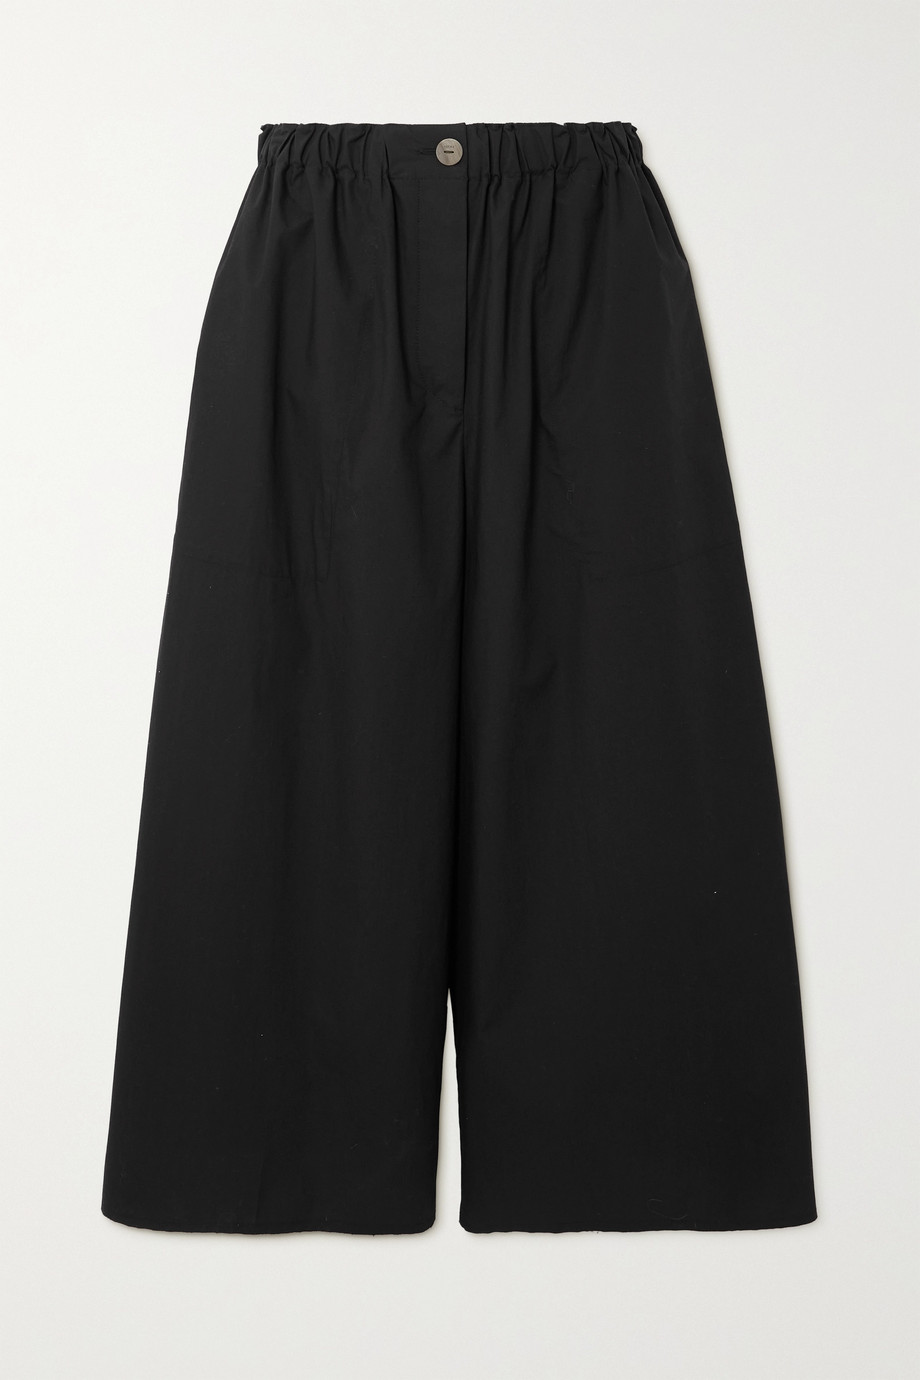 LOEWE + Paula's Ibiza cropped cotton wide-leg pants